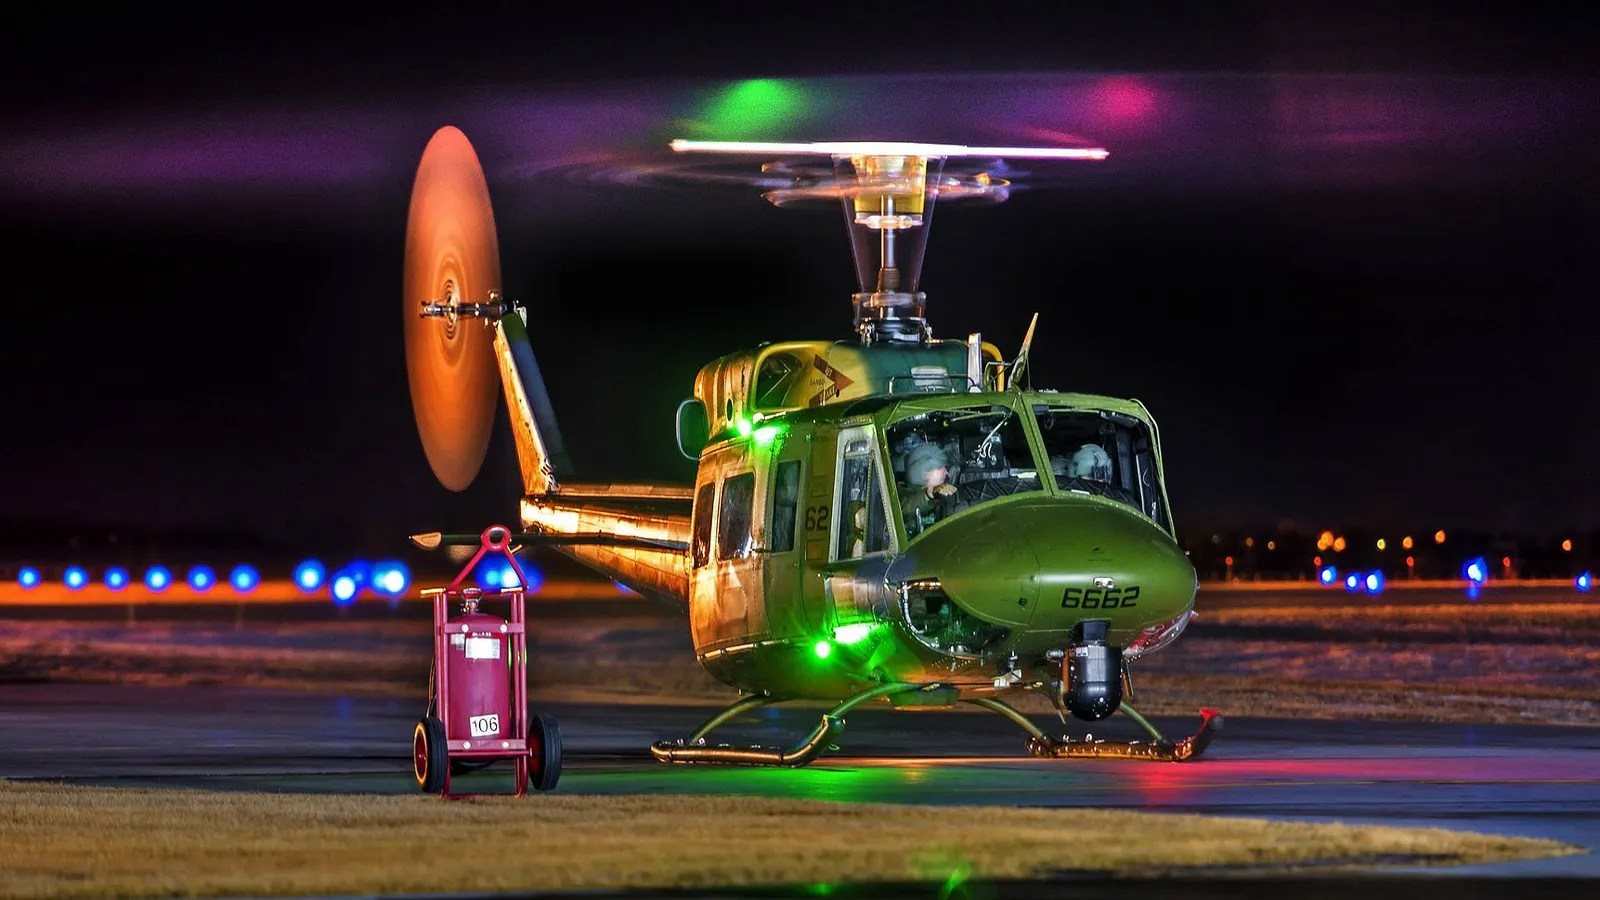 Old Time Car Wallpaper This Usaf Uh 1n Huey May Be Old But It Sure Looks